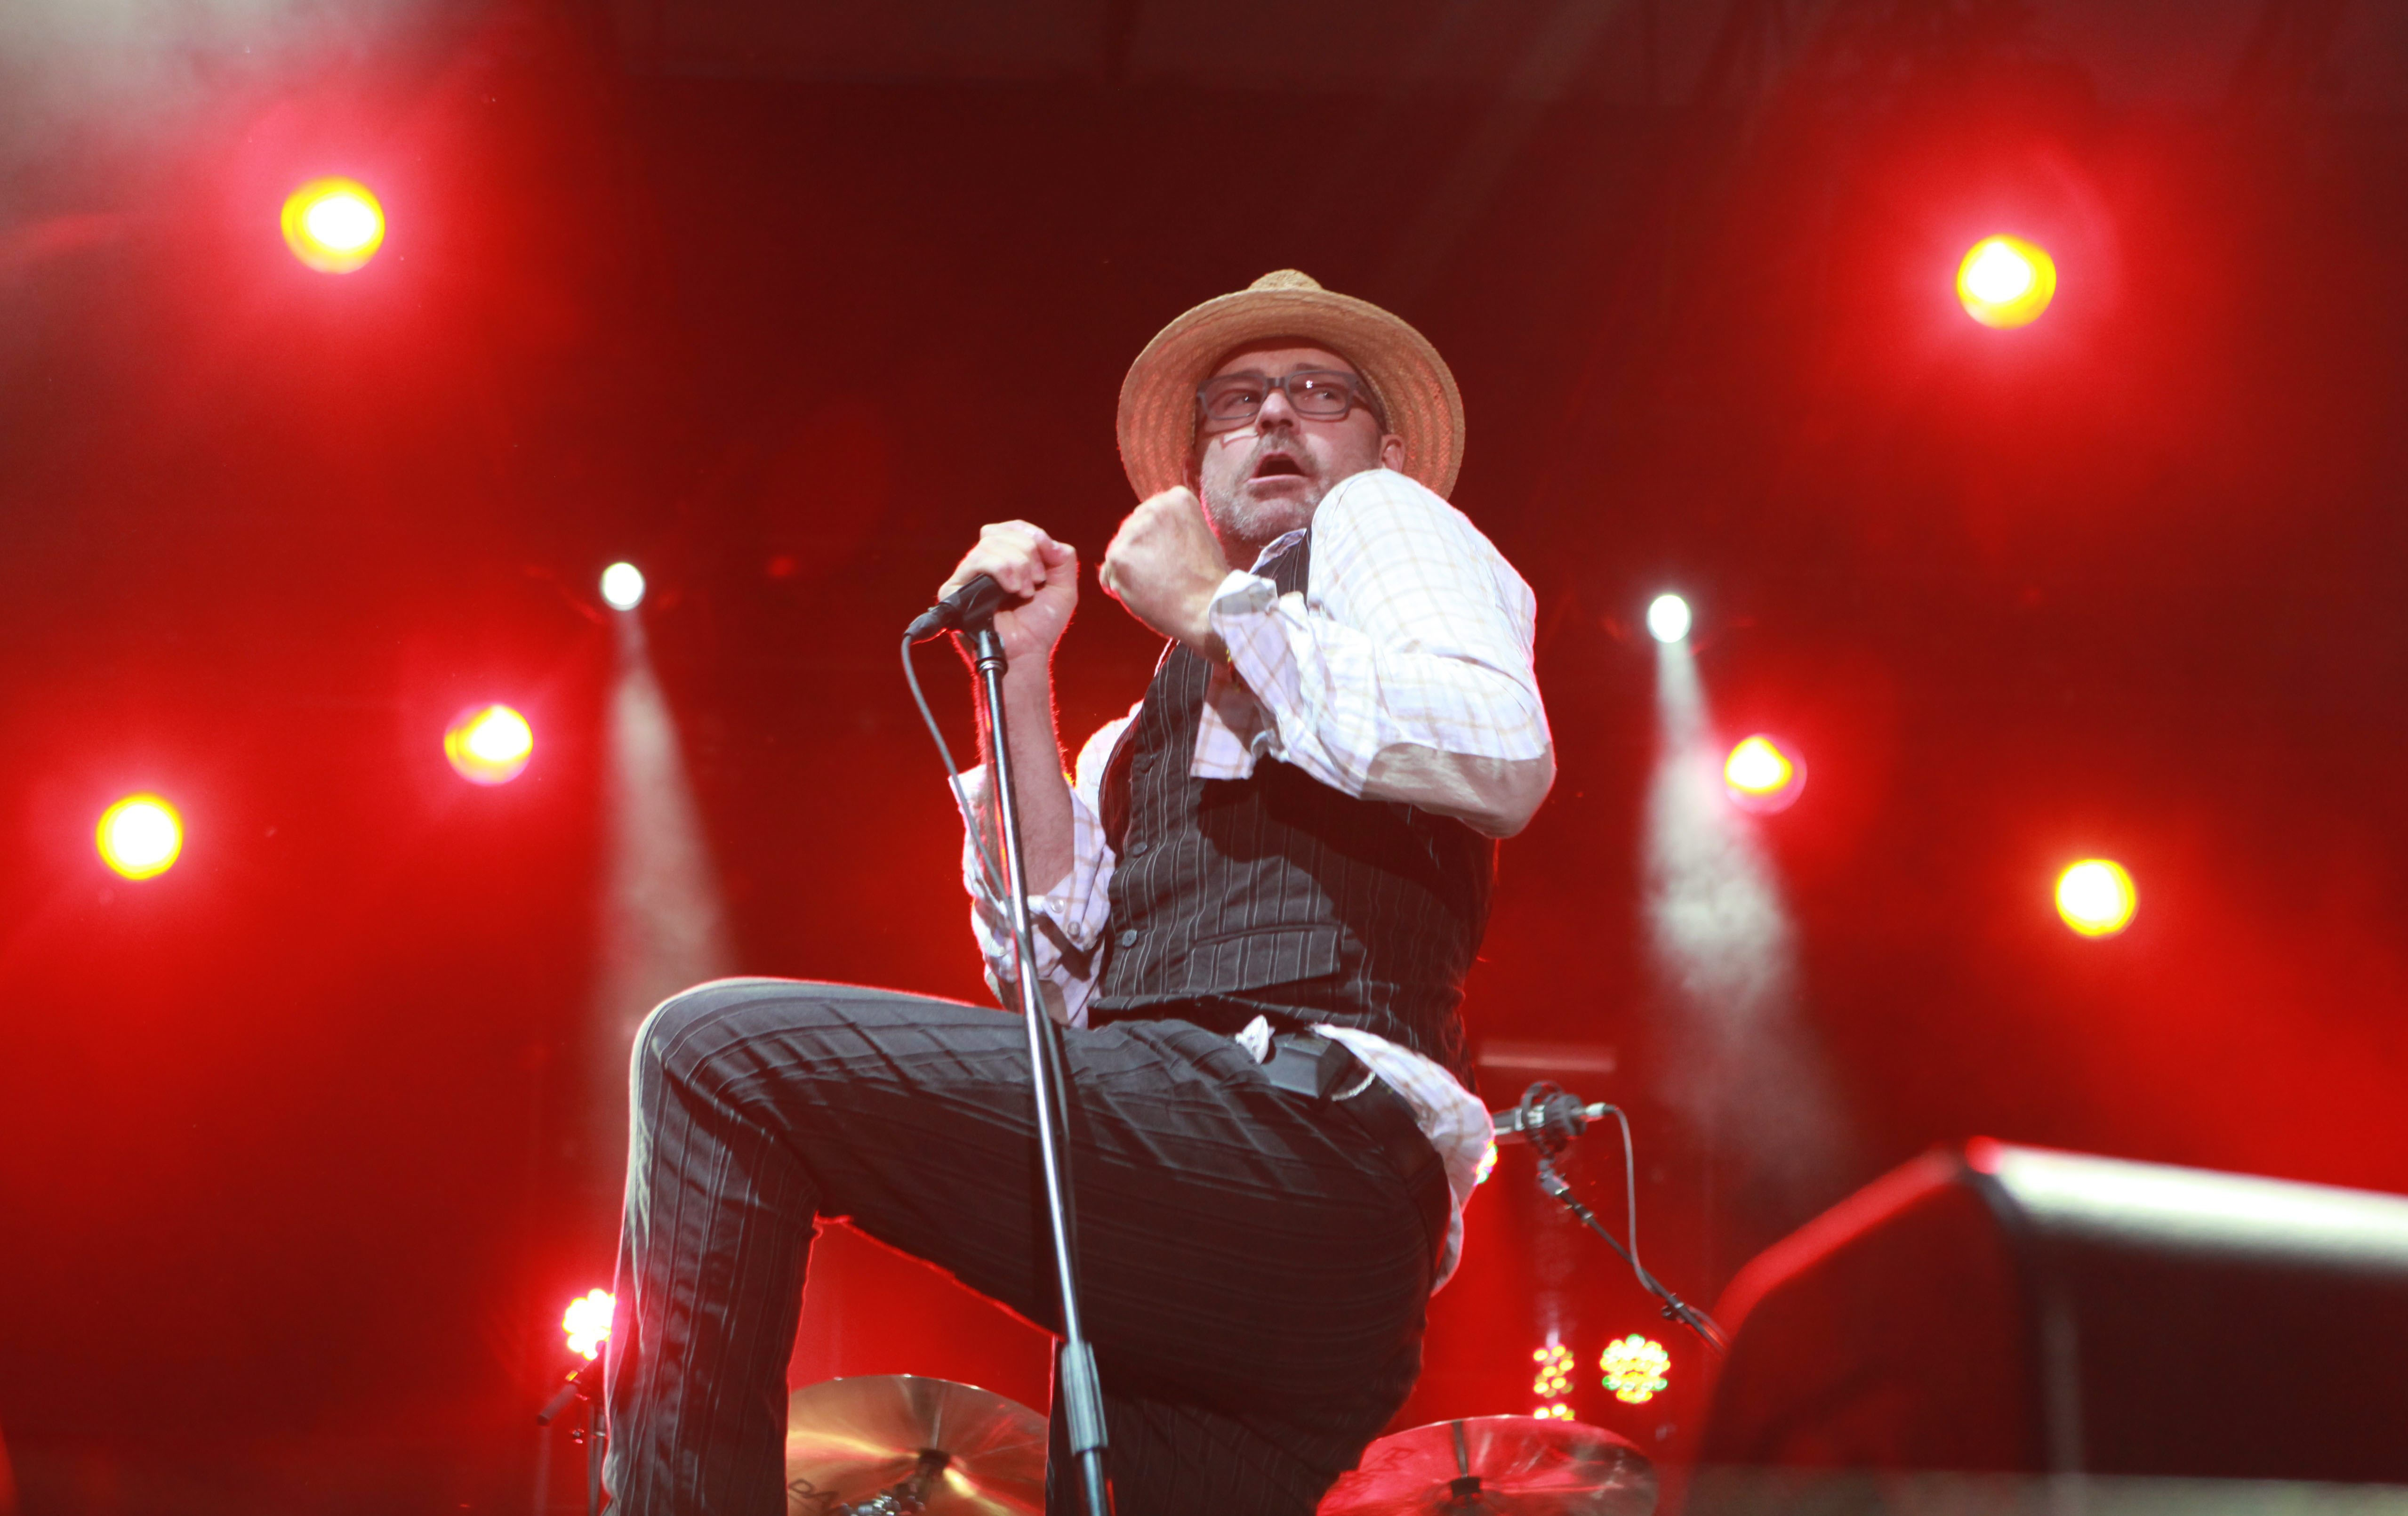 {photo for features} The Tragically Hip headlined Buffalo Rocks the Harbor on Saturday July 30, 2001 at the Central Wharf.  Gord Downie is the very theatrical lead singer.  {photo by Sharon Cantillon / Buffalo News}